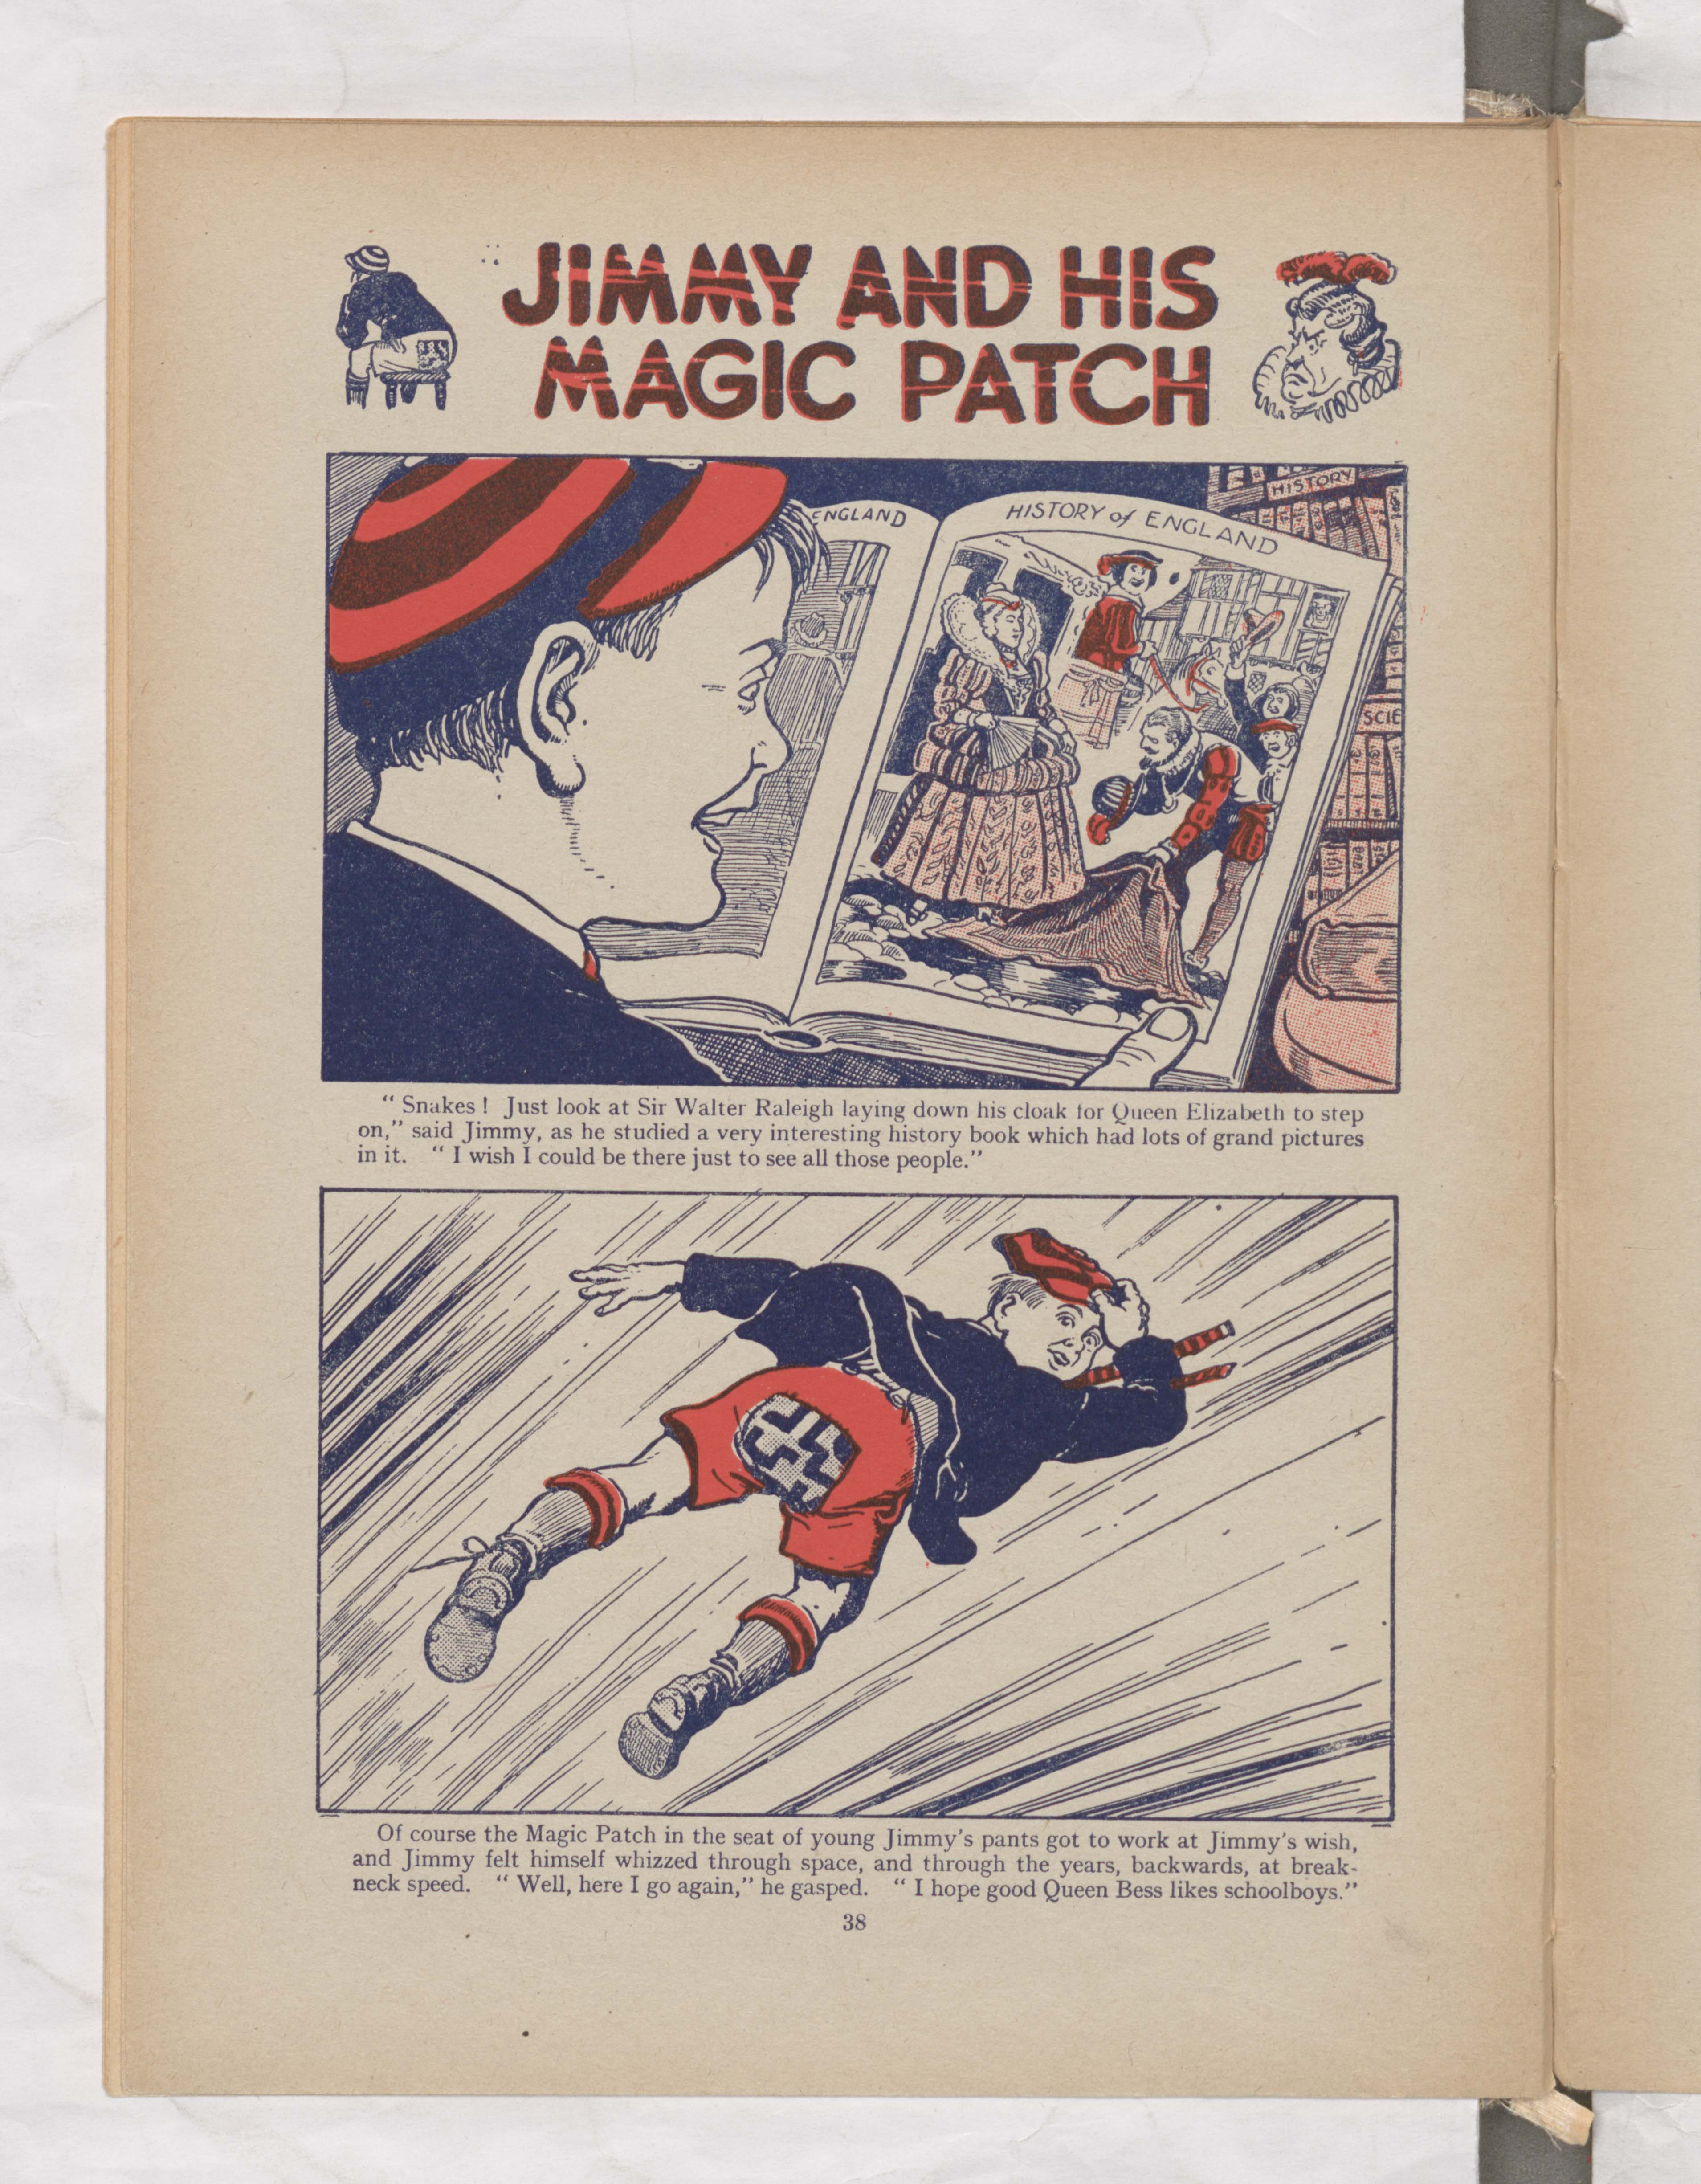 Jimmy and His Magic Patch - Page 1 - Beano Book 1944 Annual